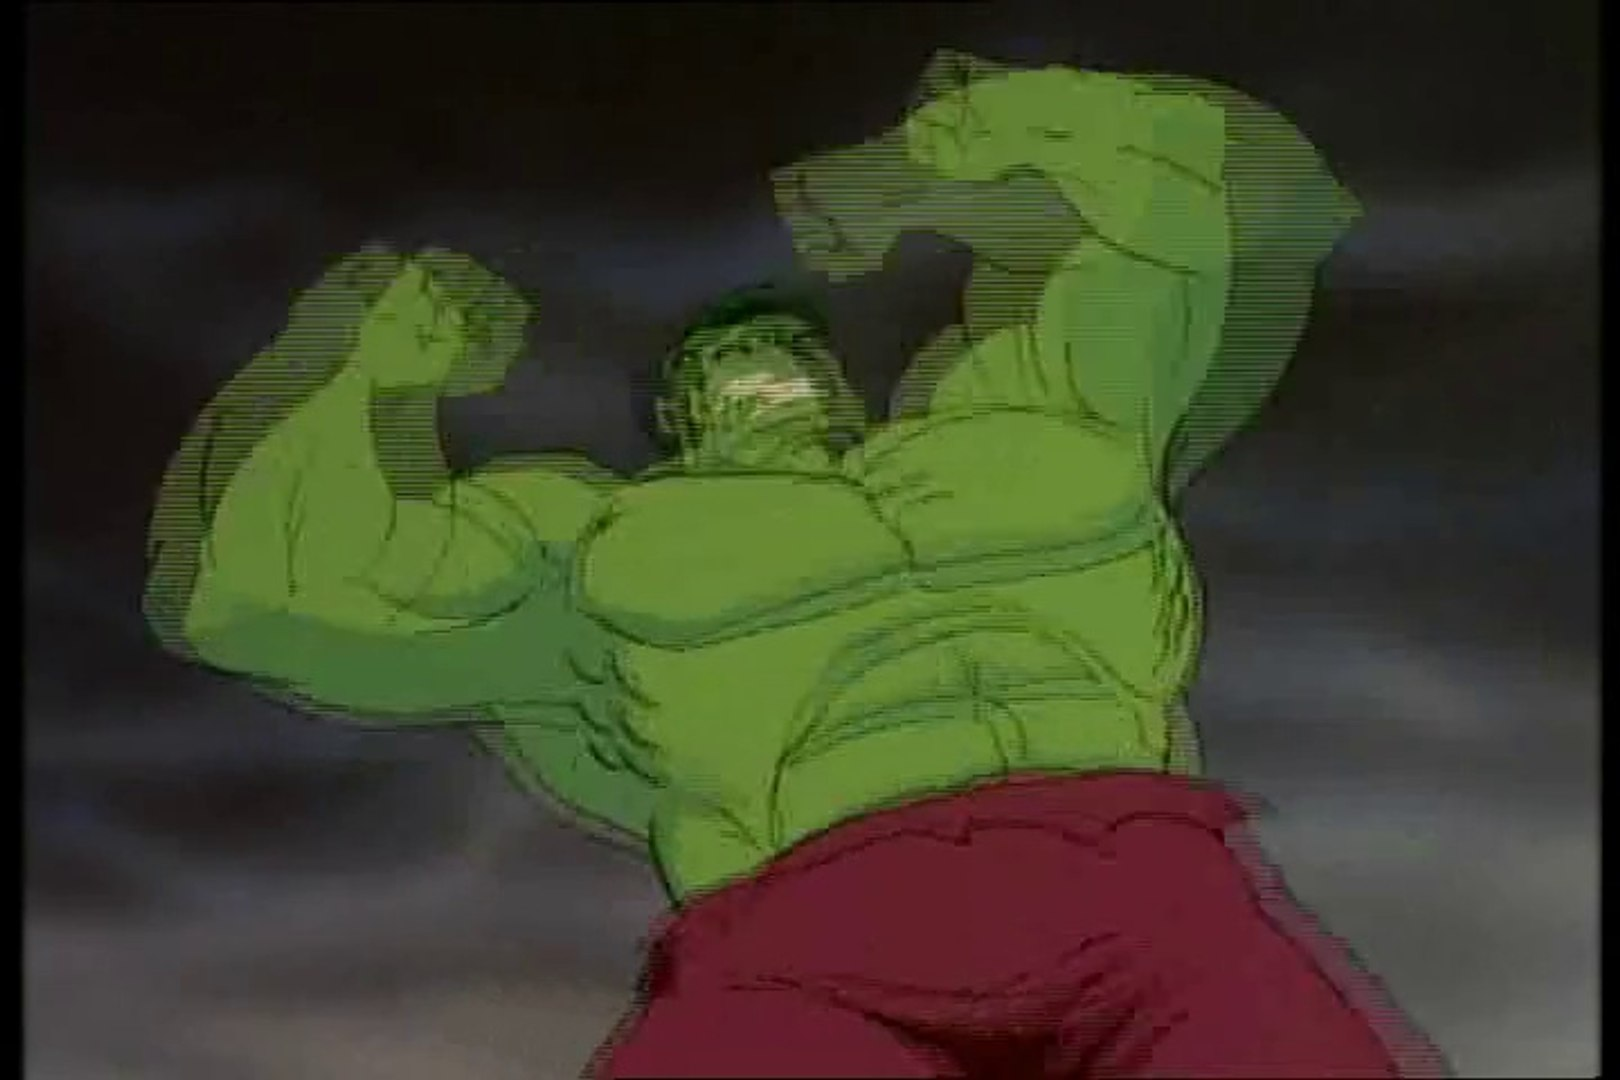 L Incroyable Hulk 1996 Premier Episode Video Dailymotion